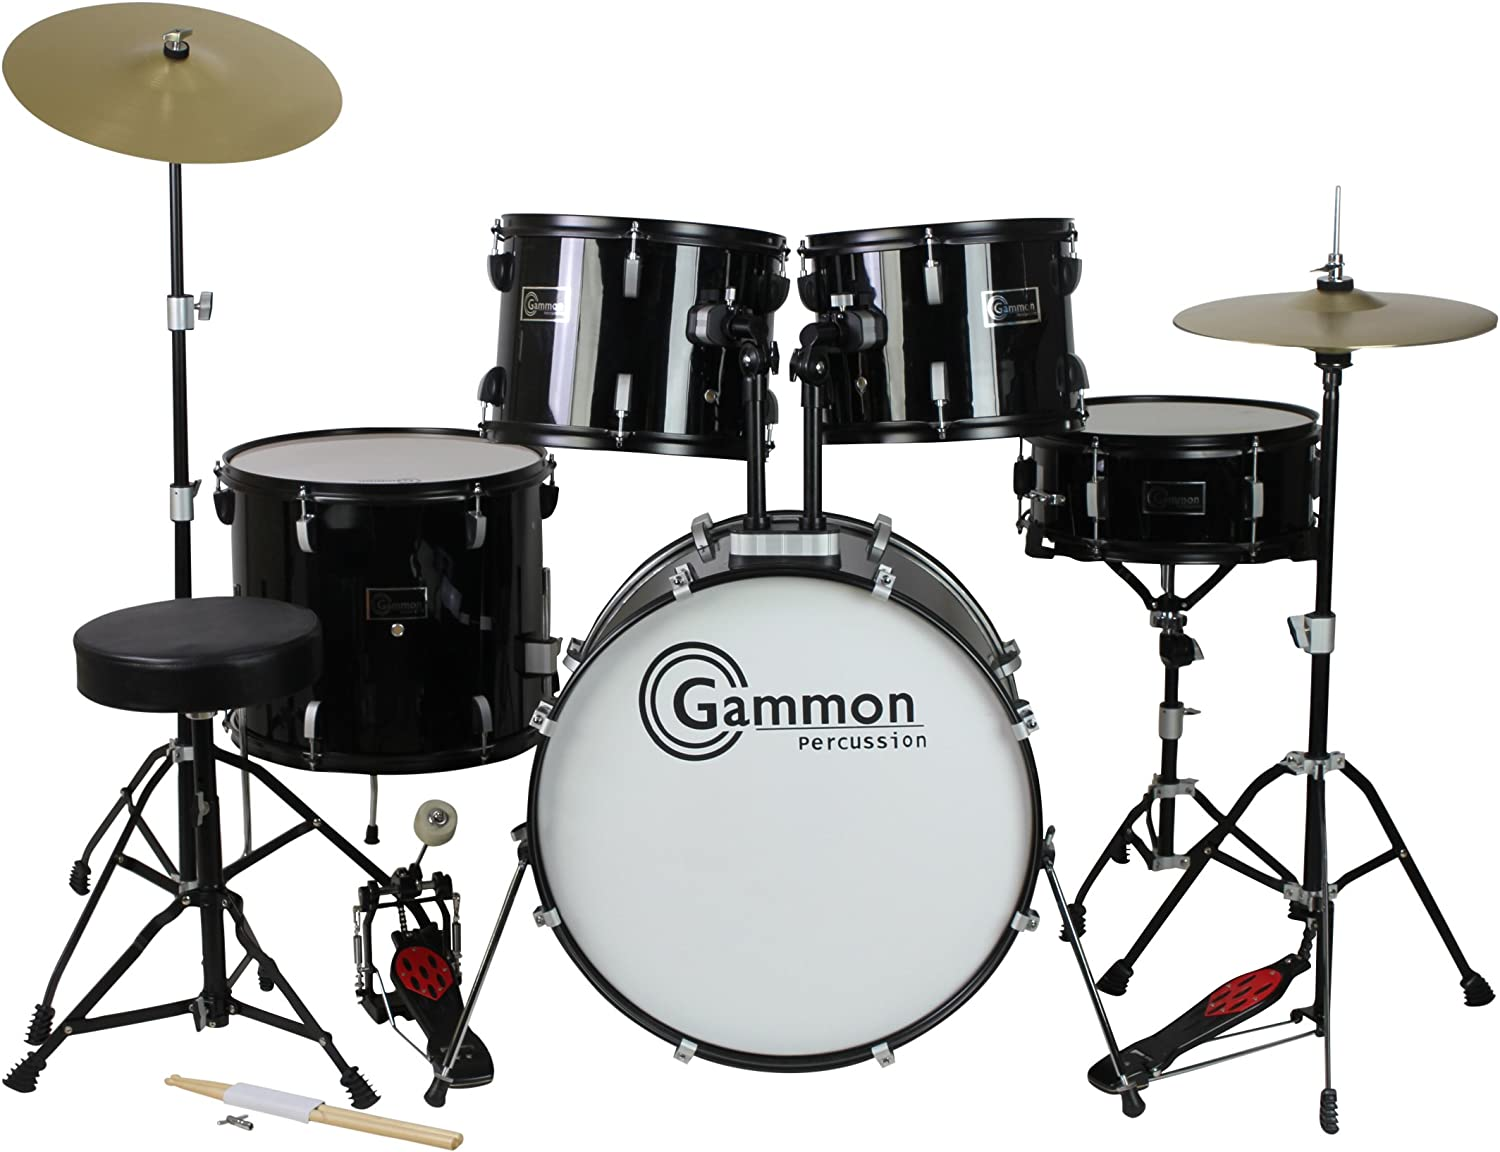 Gammon Percussion Full Size Complete Adult 5 Piece Drum Set with Cymbals Stands...